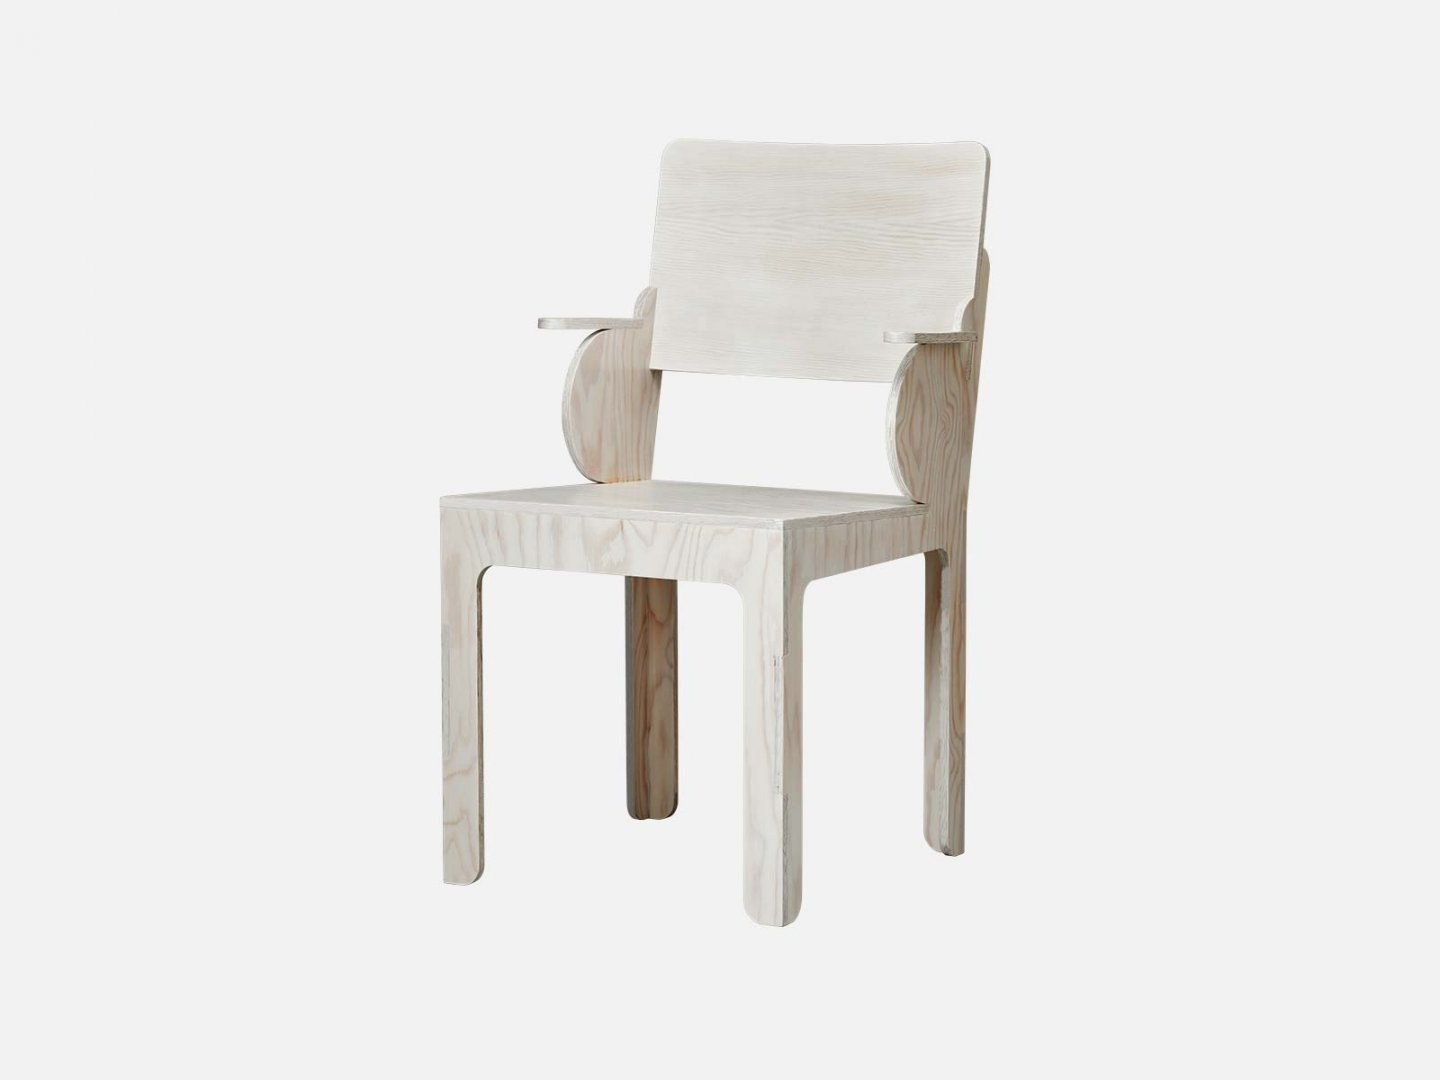 terra-chair-alexander-lervik-design-house-stockholm